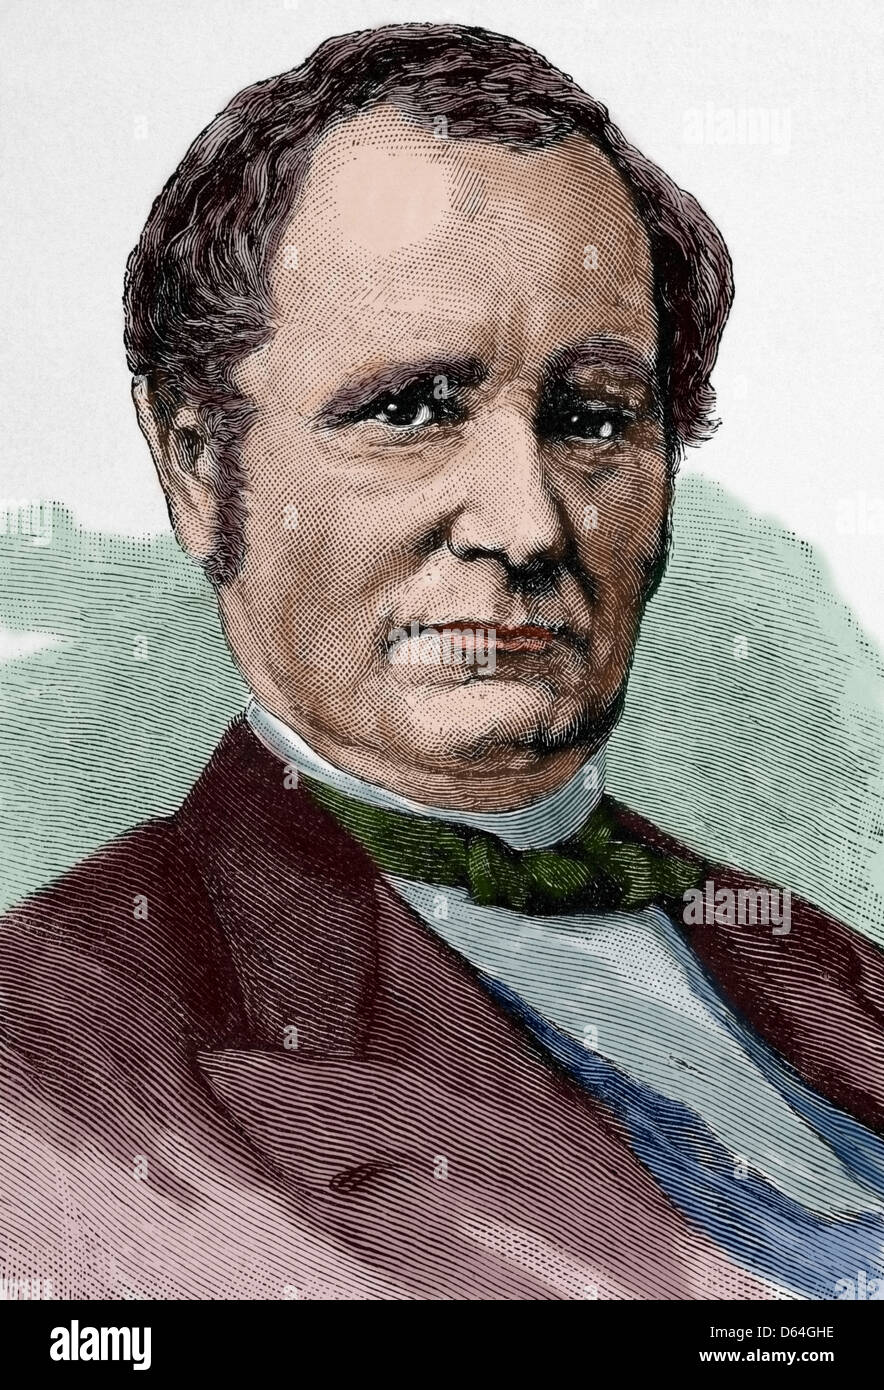 Thomas Andrews Hendricks (1819-1885). American politician. 21st US Vice president. Engraving in The Artistic Illustration, - Stock Image